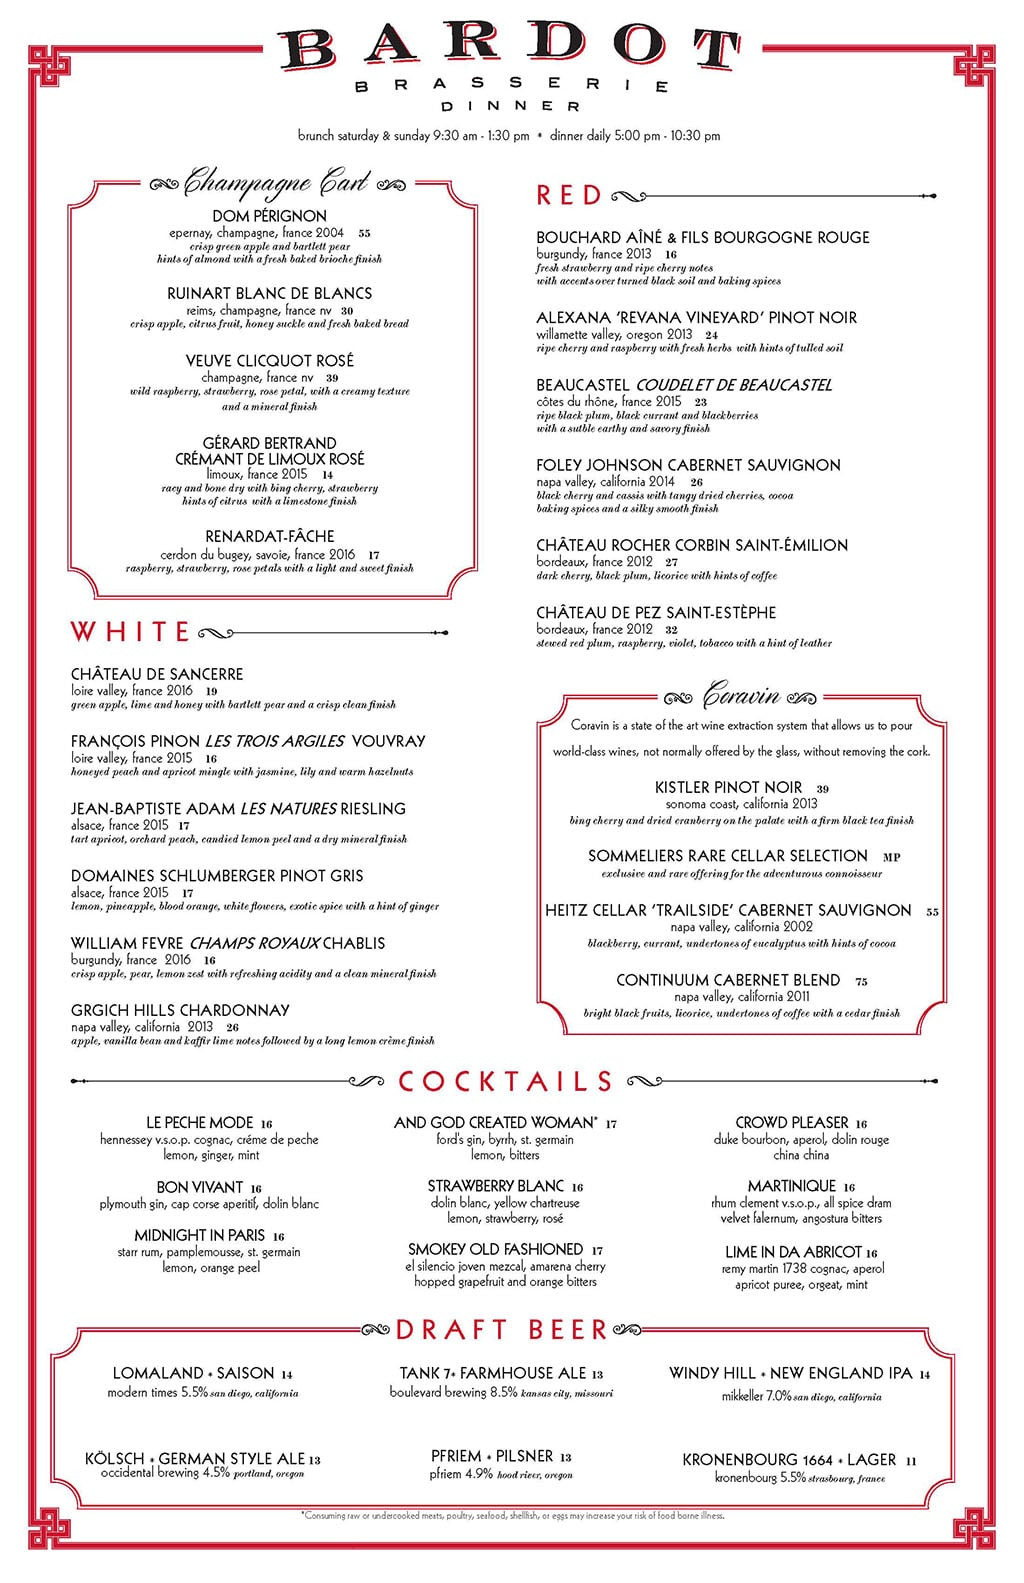 Bardot Brasserie dinner menu - wine